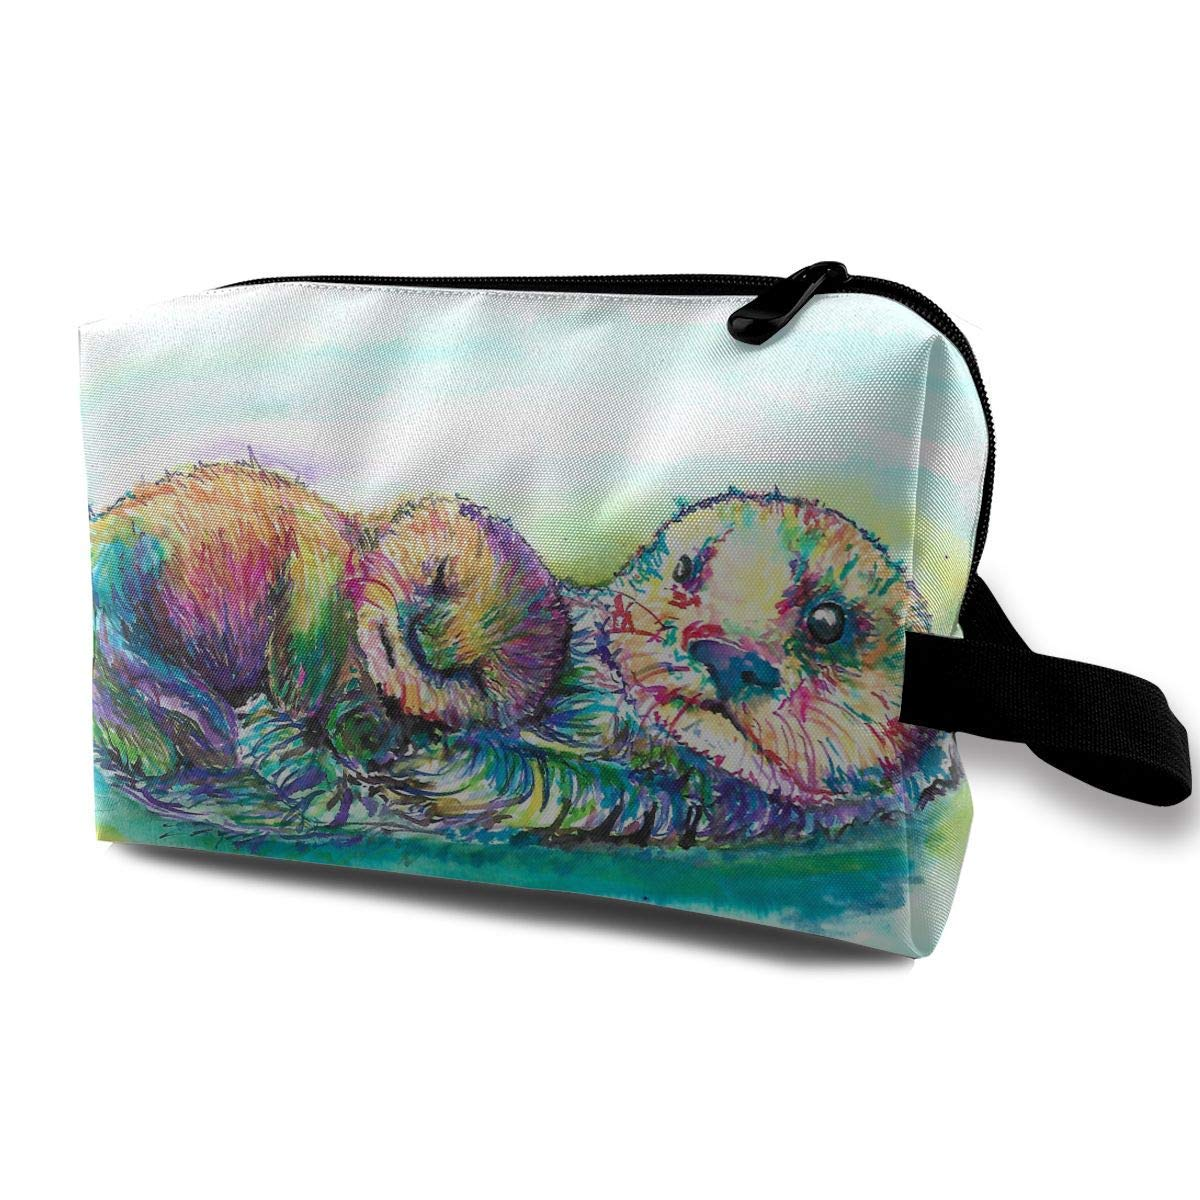 Watercolor Otter Small Travel Toiletry Bag Super Light Toiletry Organizer for Overnight Trip Bag